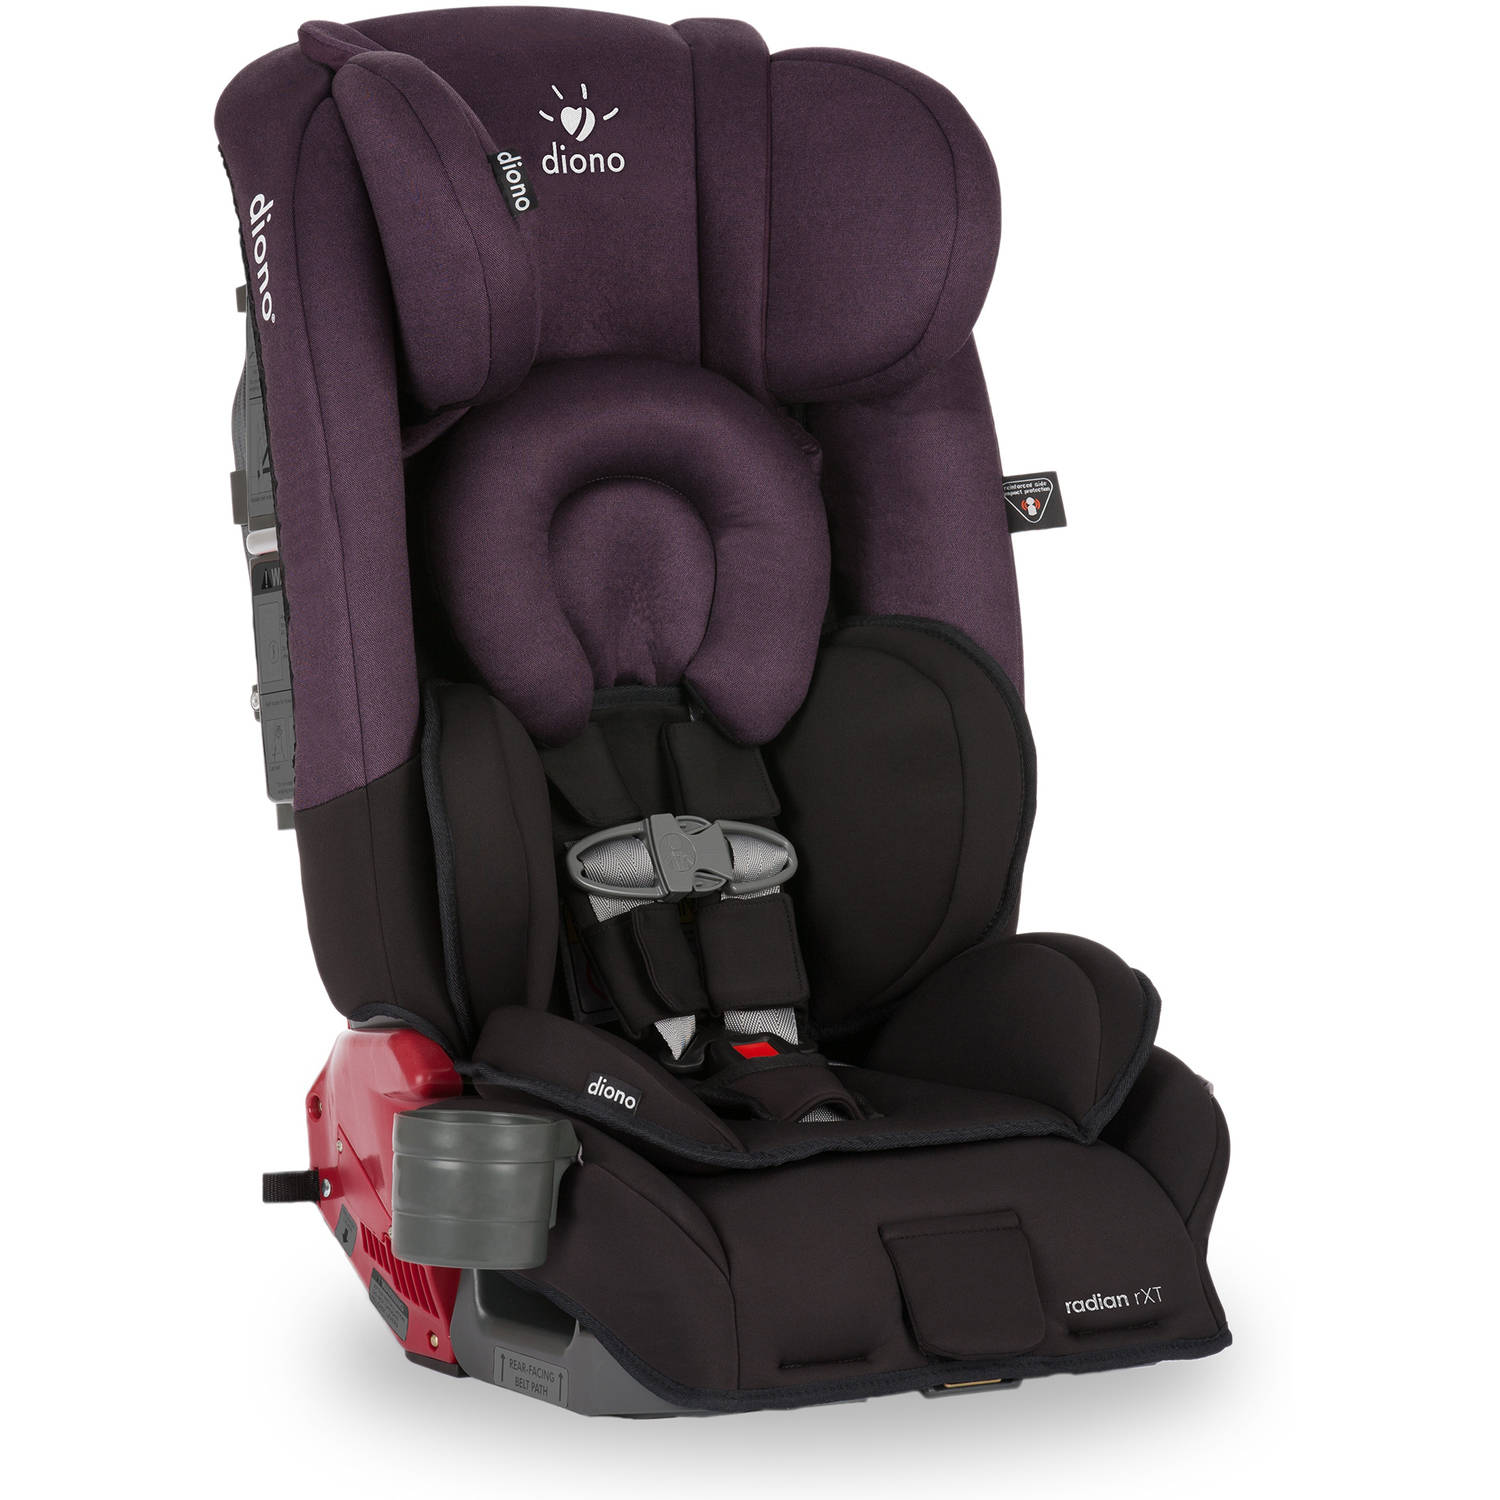 Diono Radian rXT Convertible car Seat and Booster, Black Plum